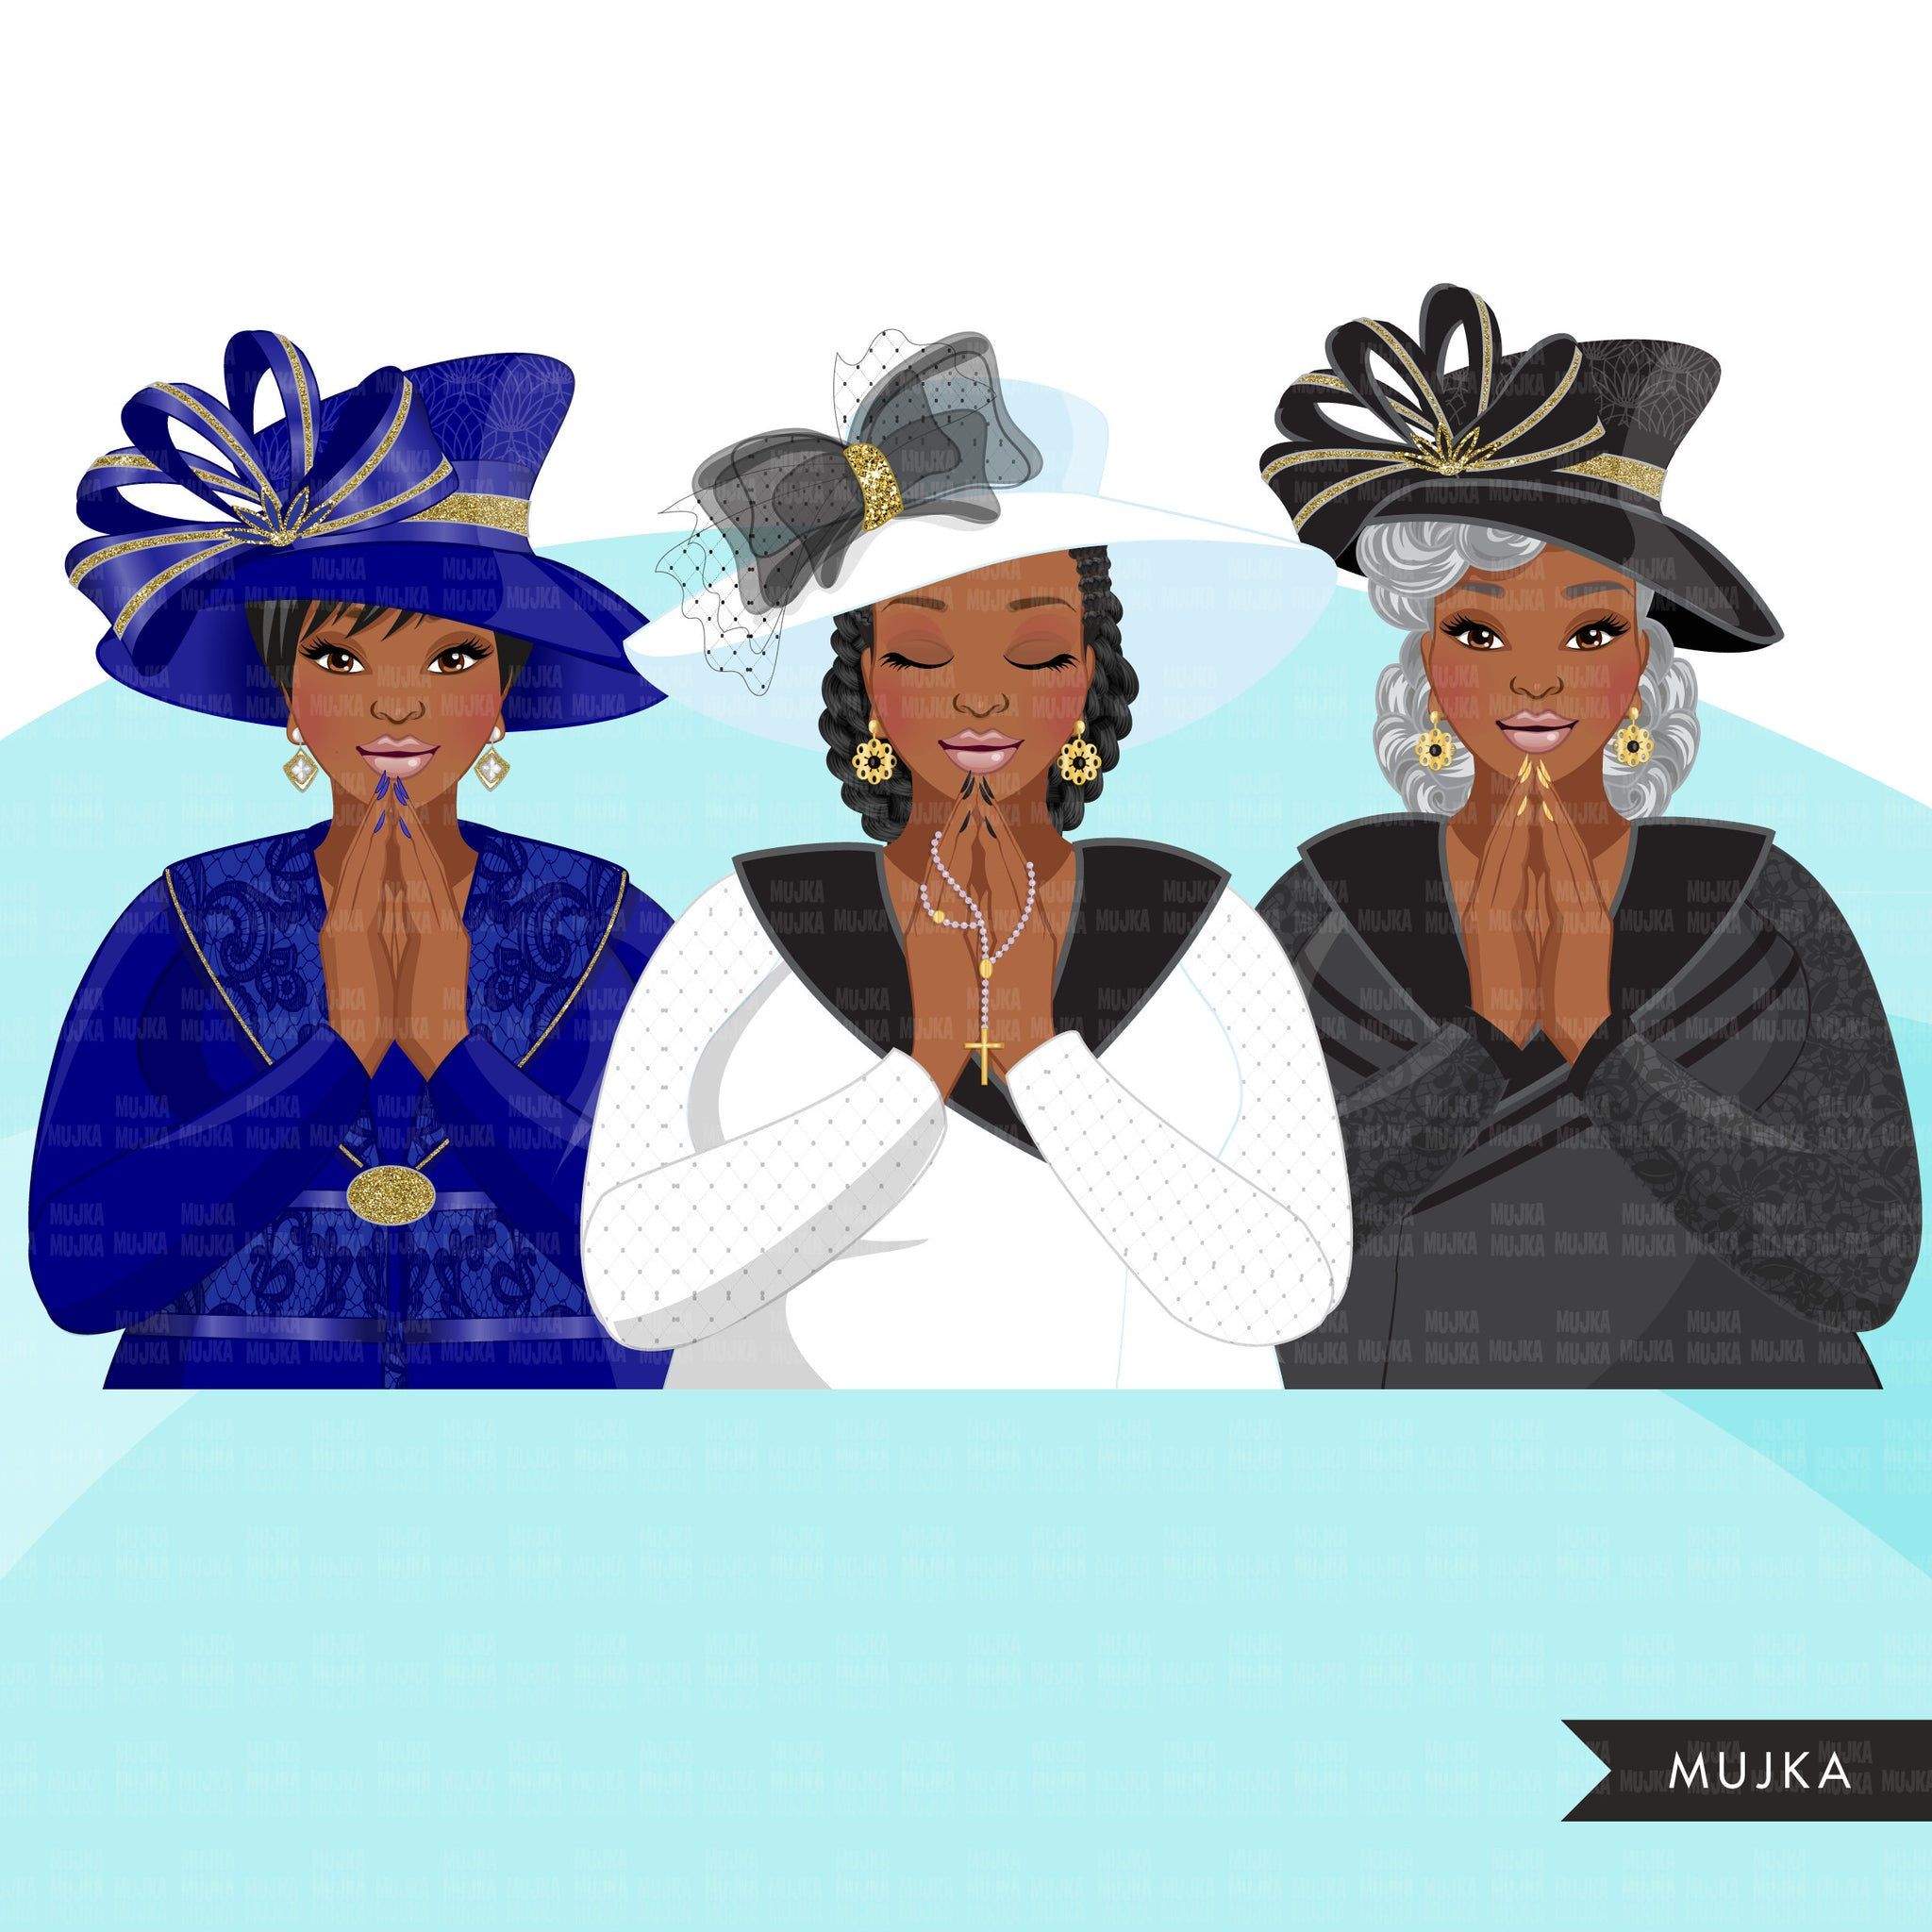 Church ladies clipart, 3 praying sisters sublimation designs, black curvy woman, faith shirt, WAKE PRAY SLAY graphics, Bible religious png